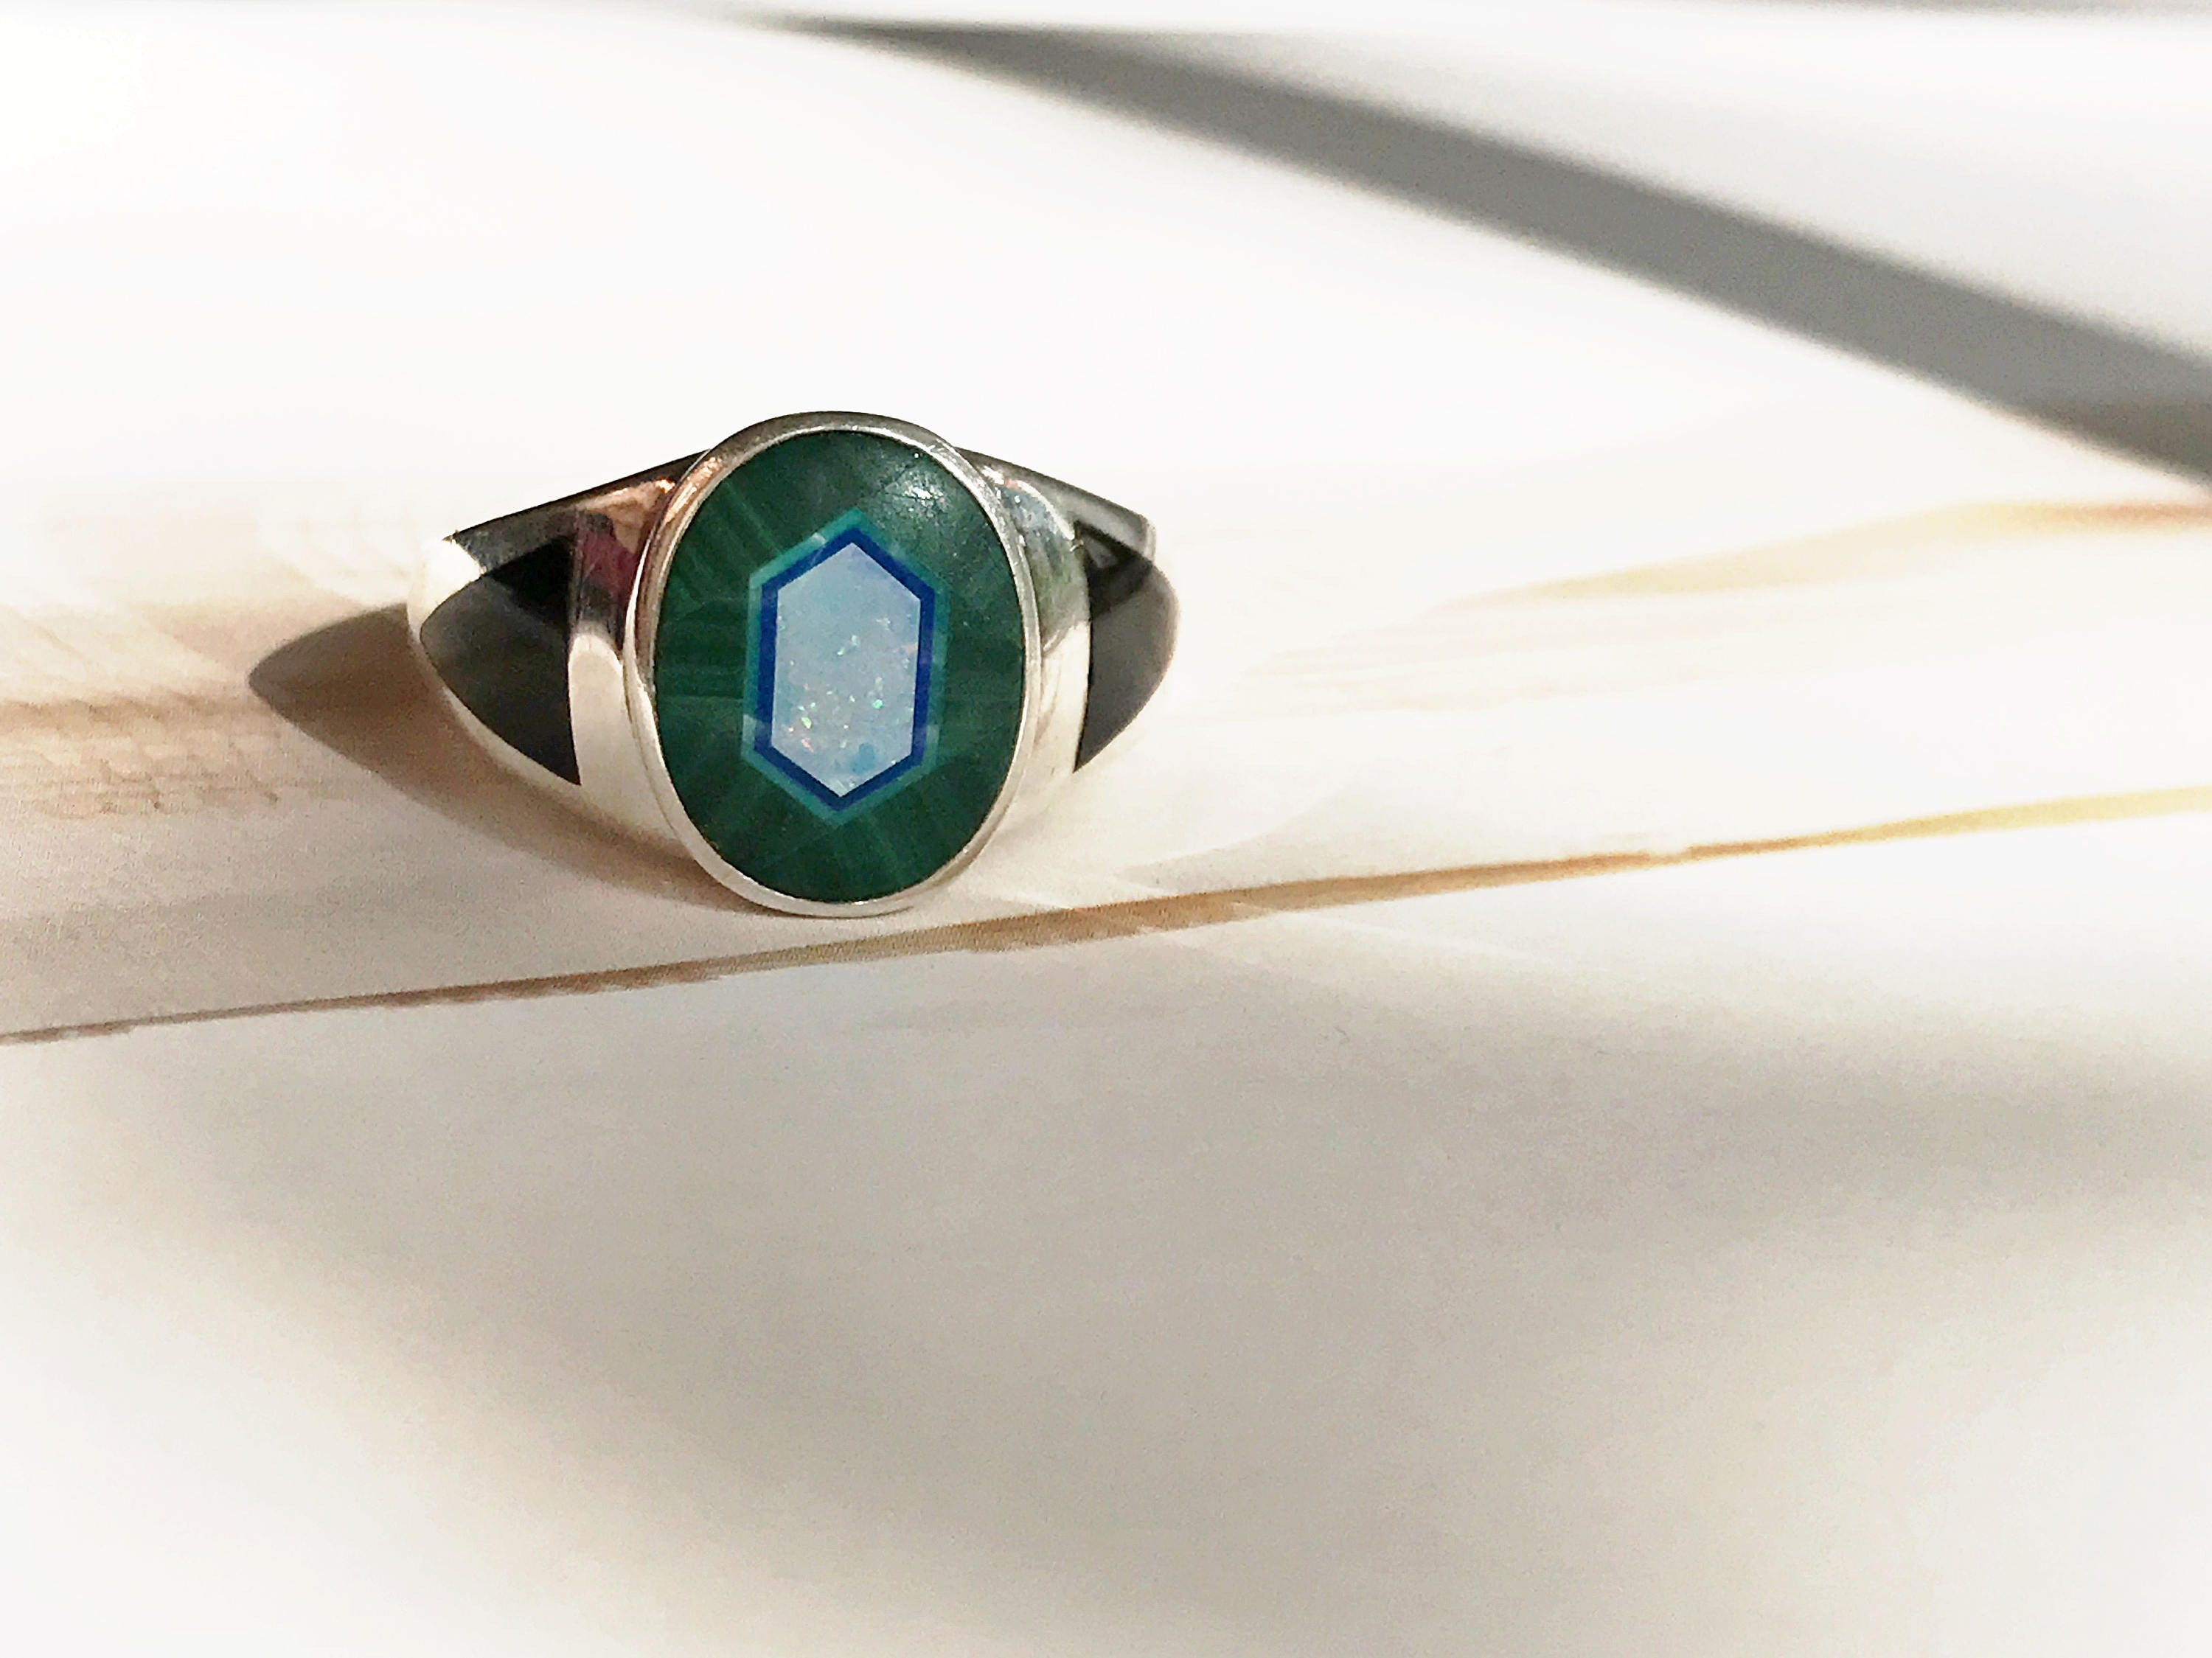 rings and rtco il signet size jewelry american lapis p malachite ring turquoise opal wedding native style southwestern signed onyx lazuli vintage fullxfull